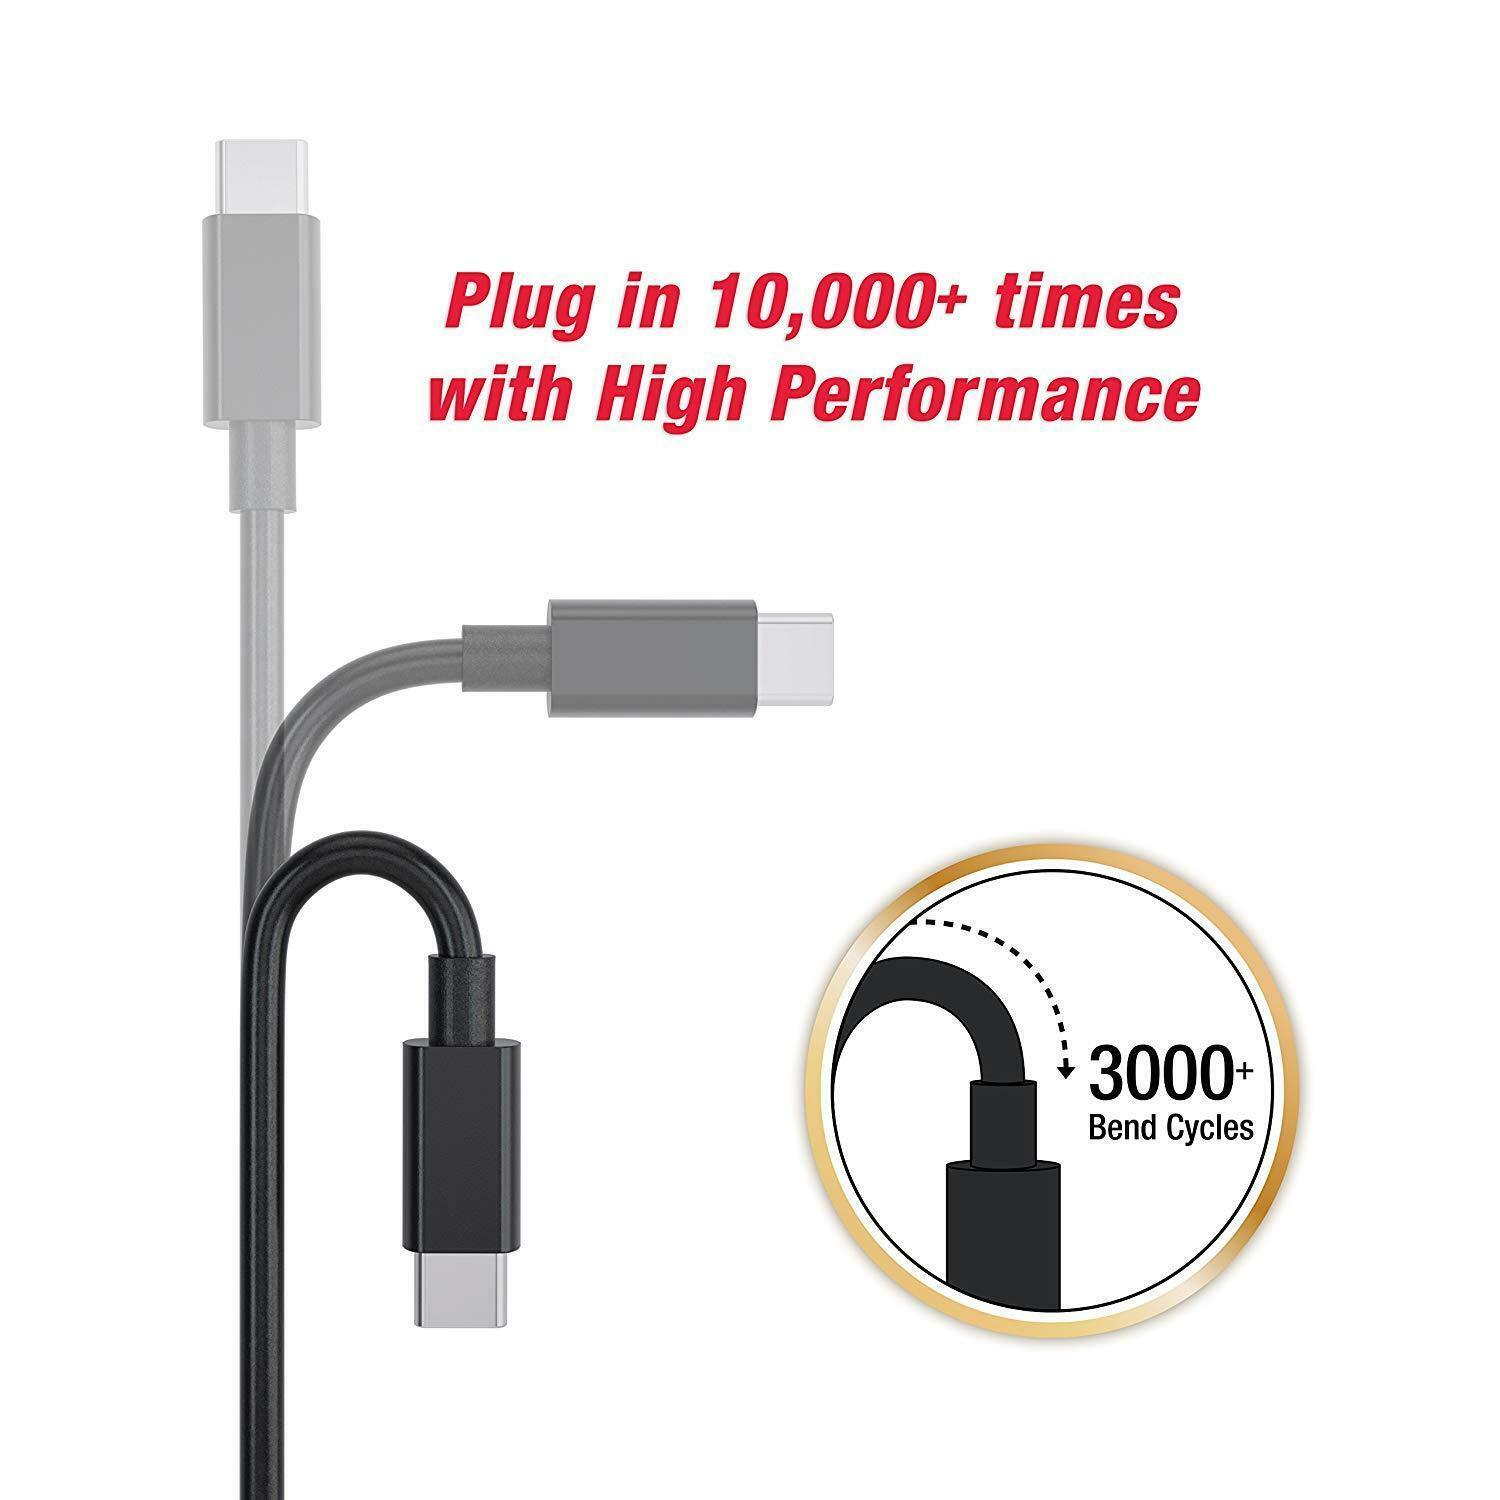 OEM Samsung USB-C Type C Cable Fast Charging Cord Galaxy S10 S9 S8 Plus Note 9 8 Cables & Adapters